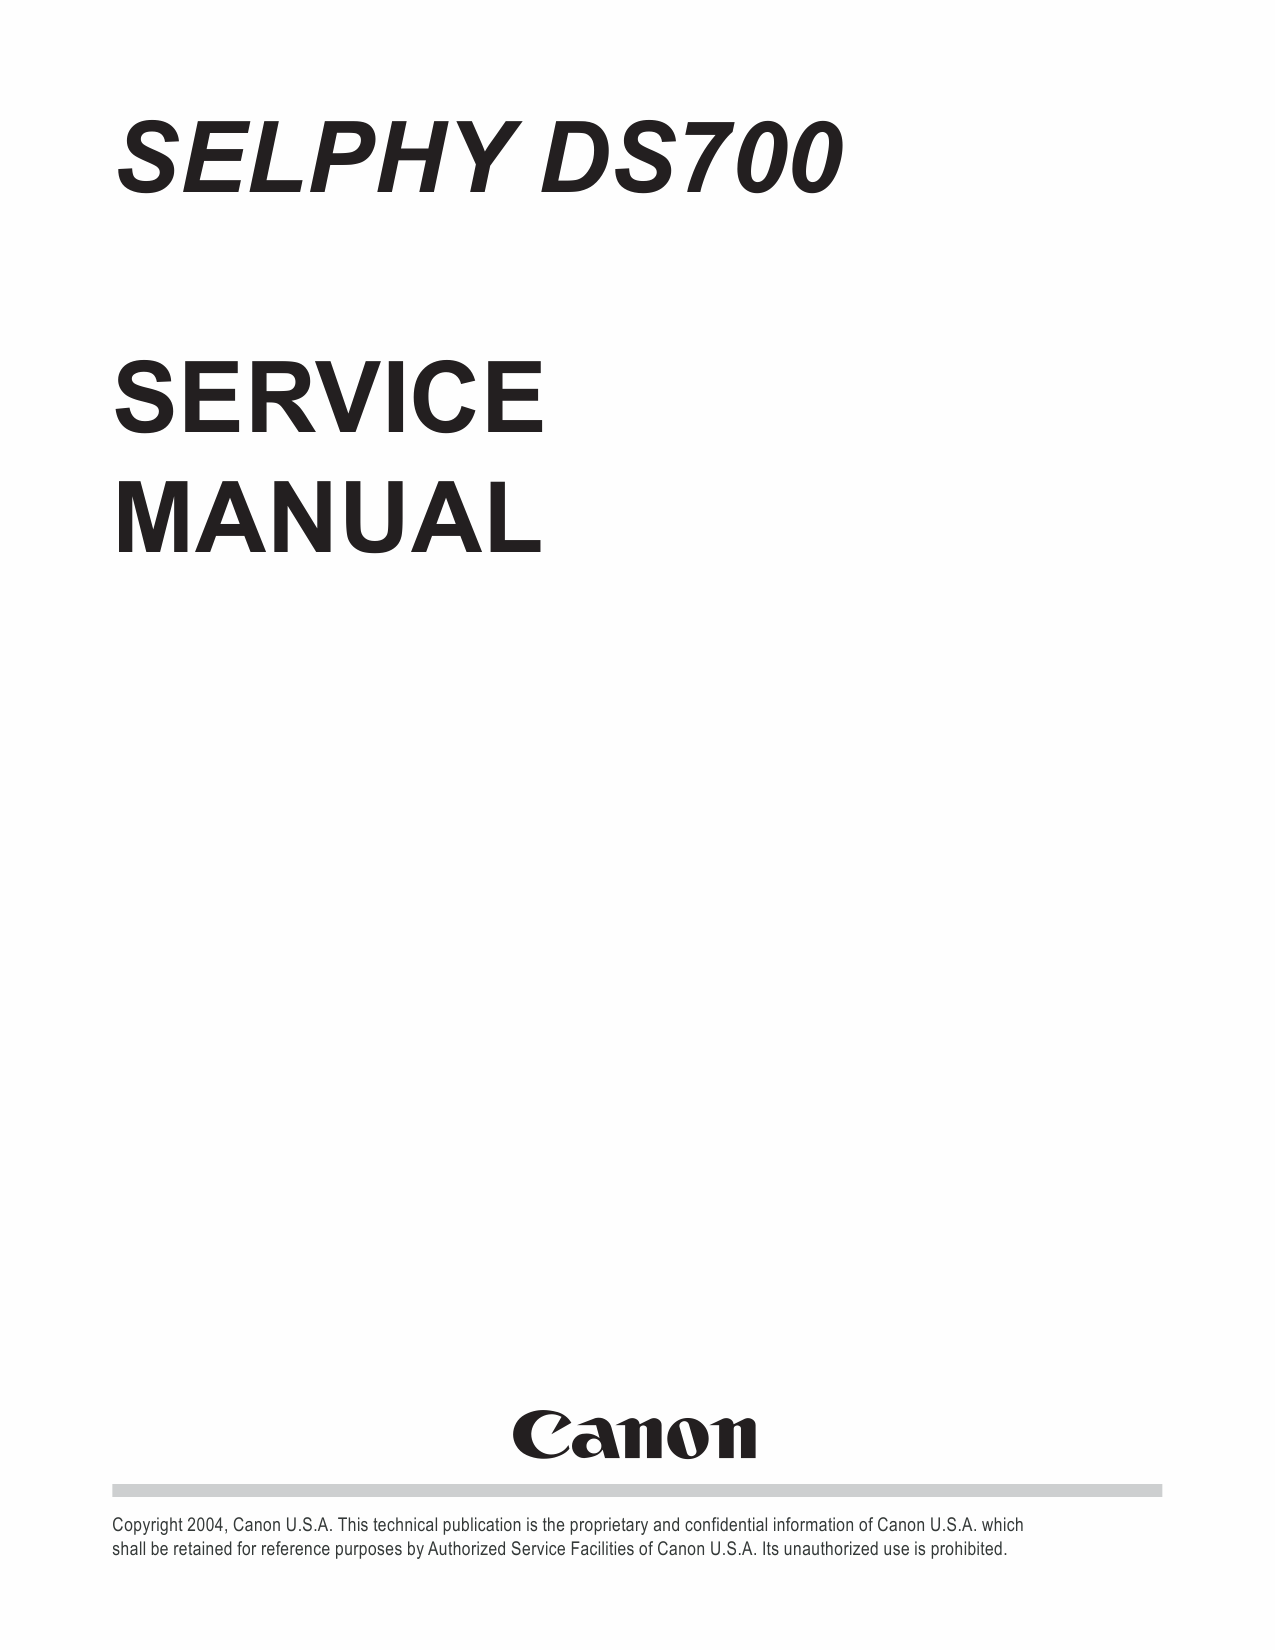 Canon SELPHY DS700 Service and Parts Manual-1